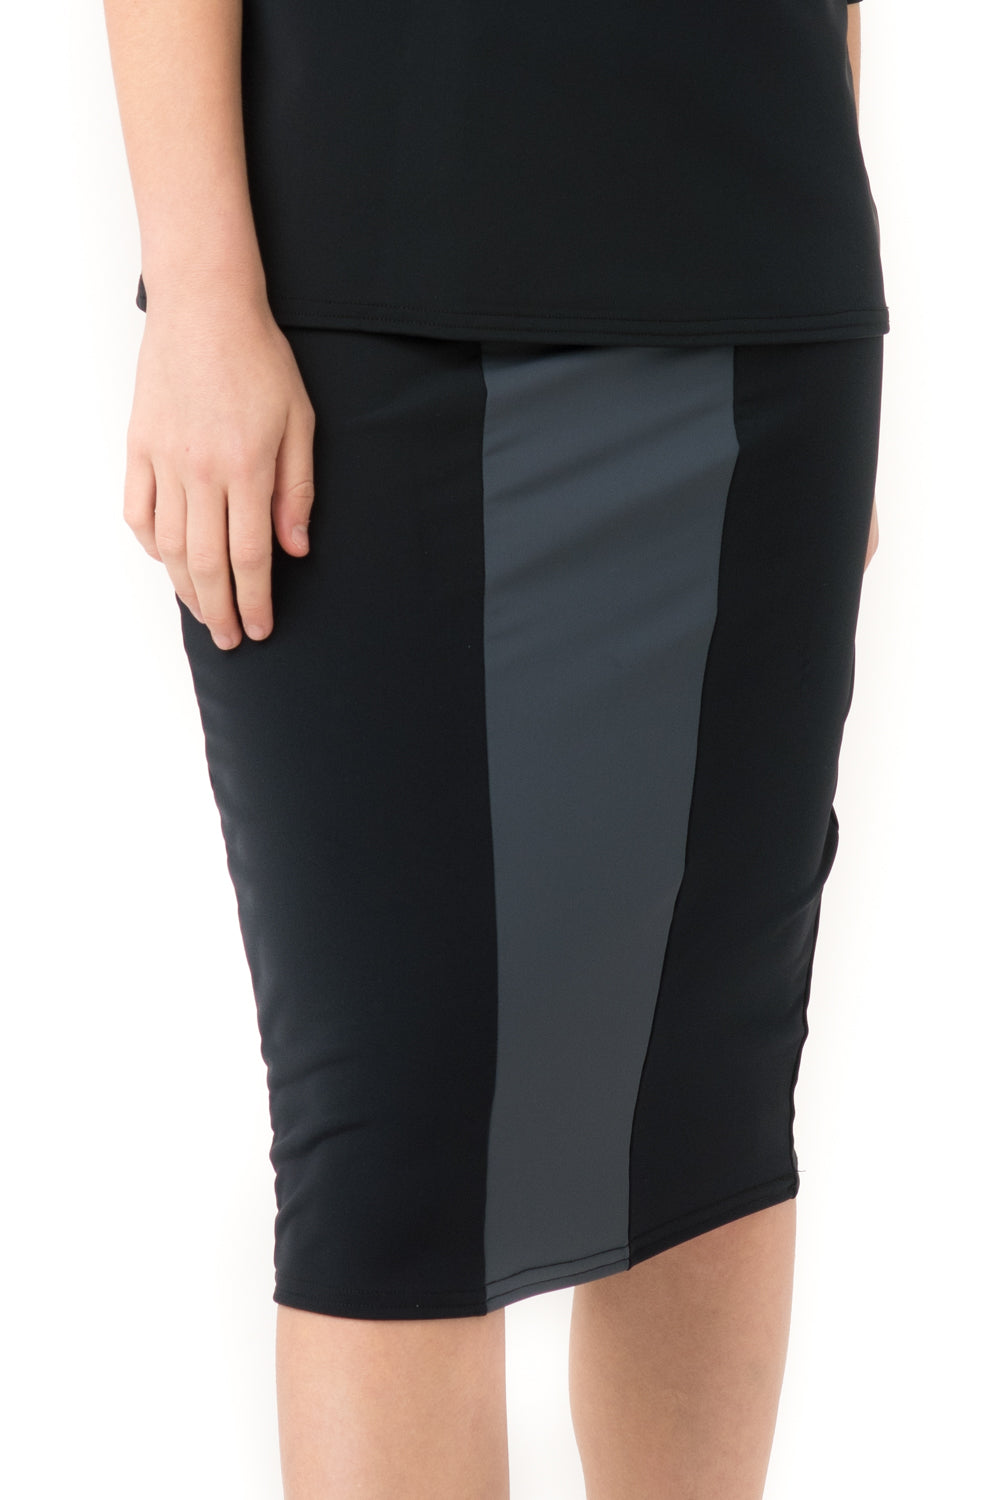 Black & Grey Pencil Swim Skirt